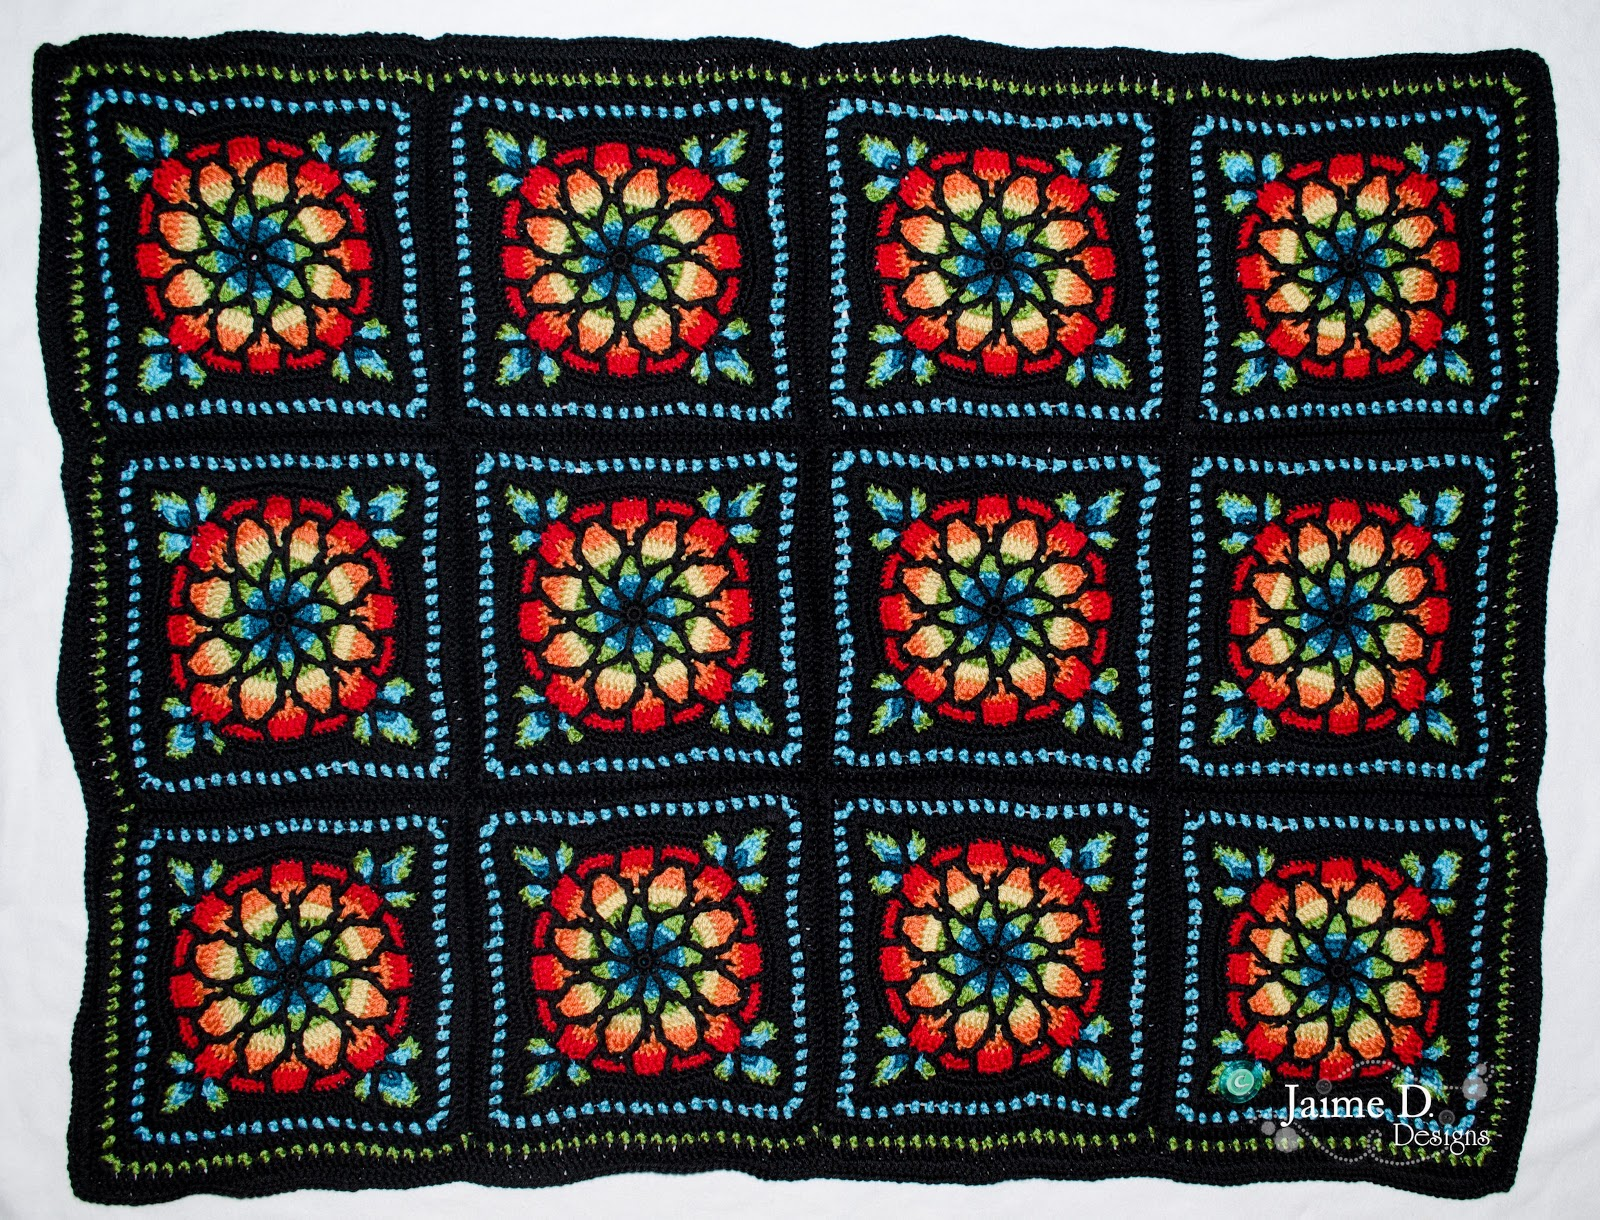 Jaime D. Designs: Stained Glass Afghan Completed!